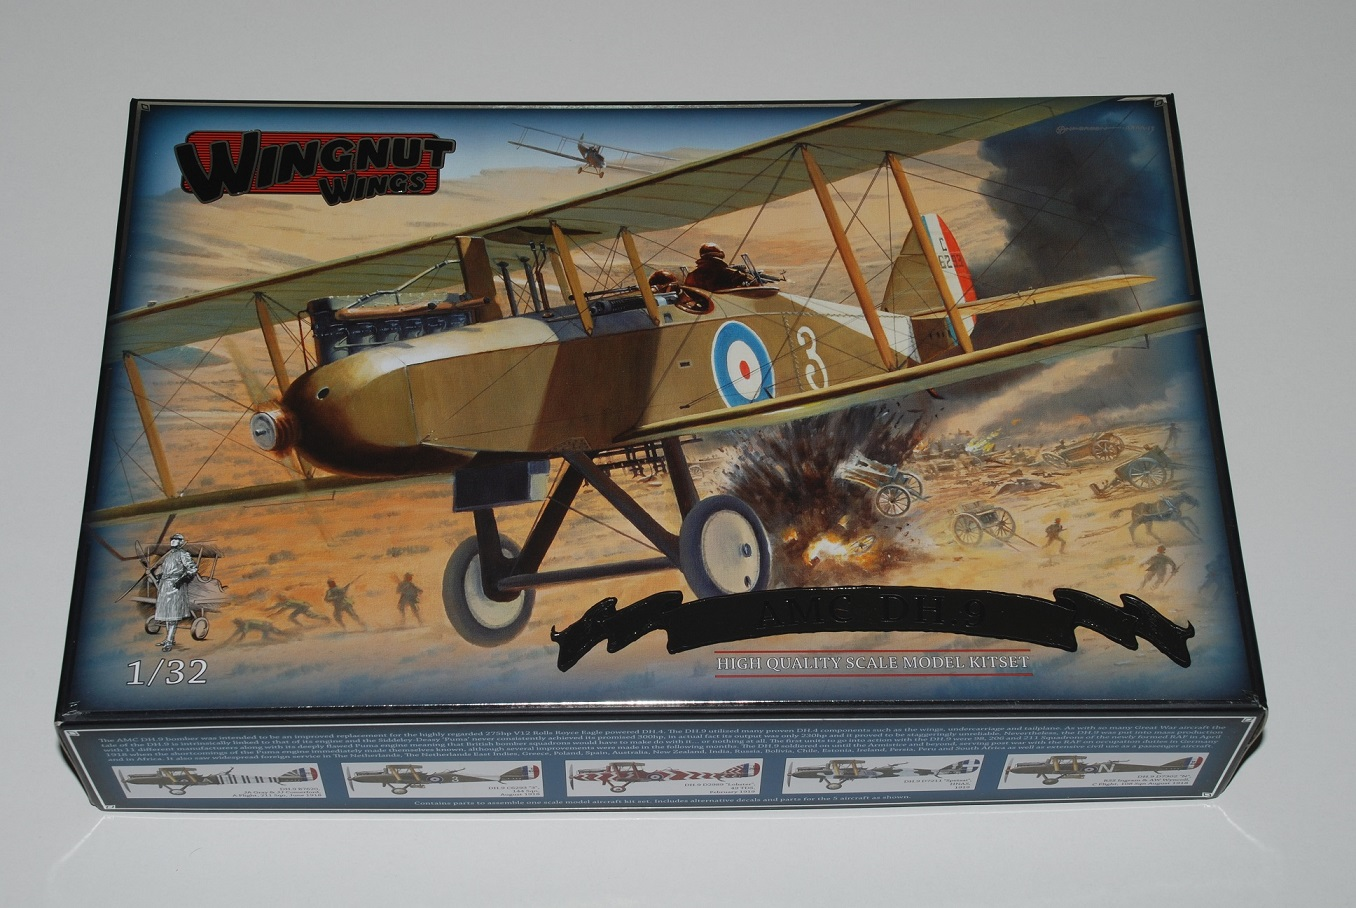 AIRCO/AMC DH.9, Wingnut Wings 1/32 (κωδικός 32035)